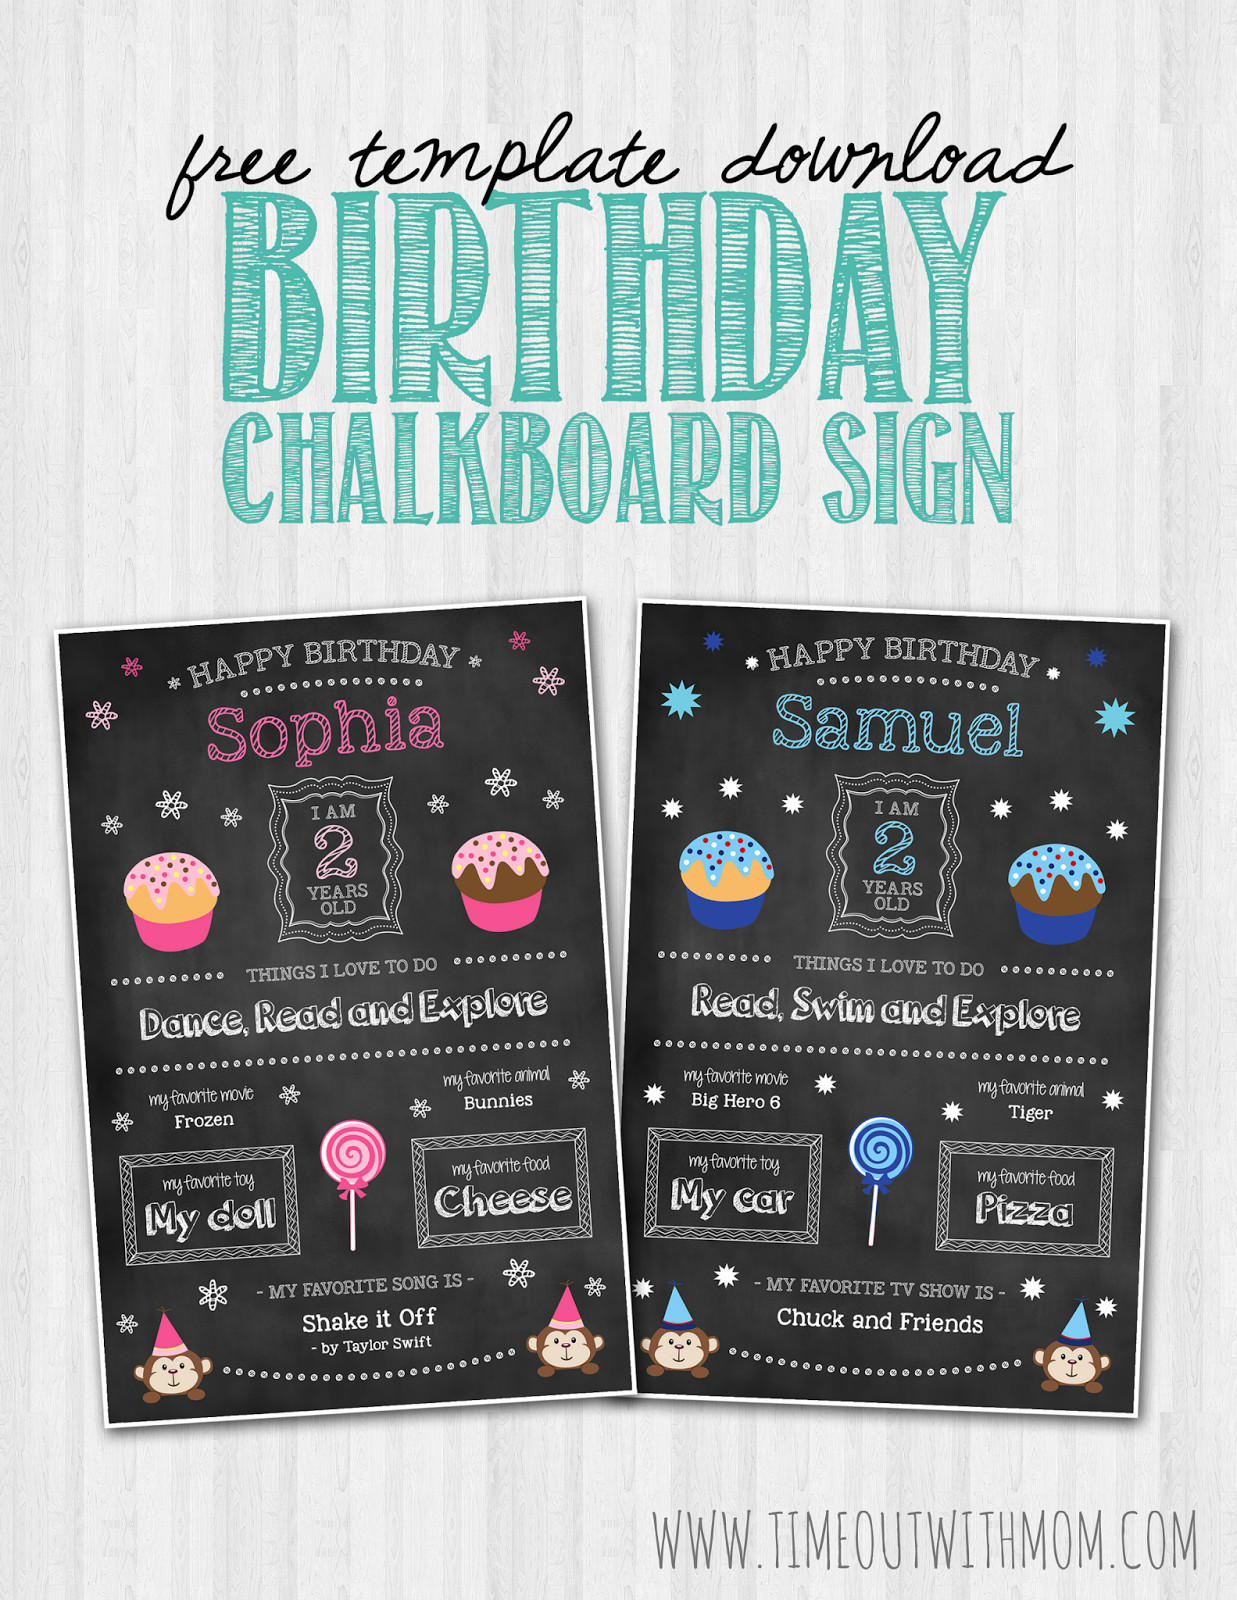 Free Birthday Chalkboard Template Birthday Chalkboard Sign Template and Tutorial